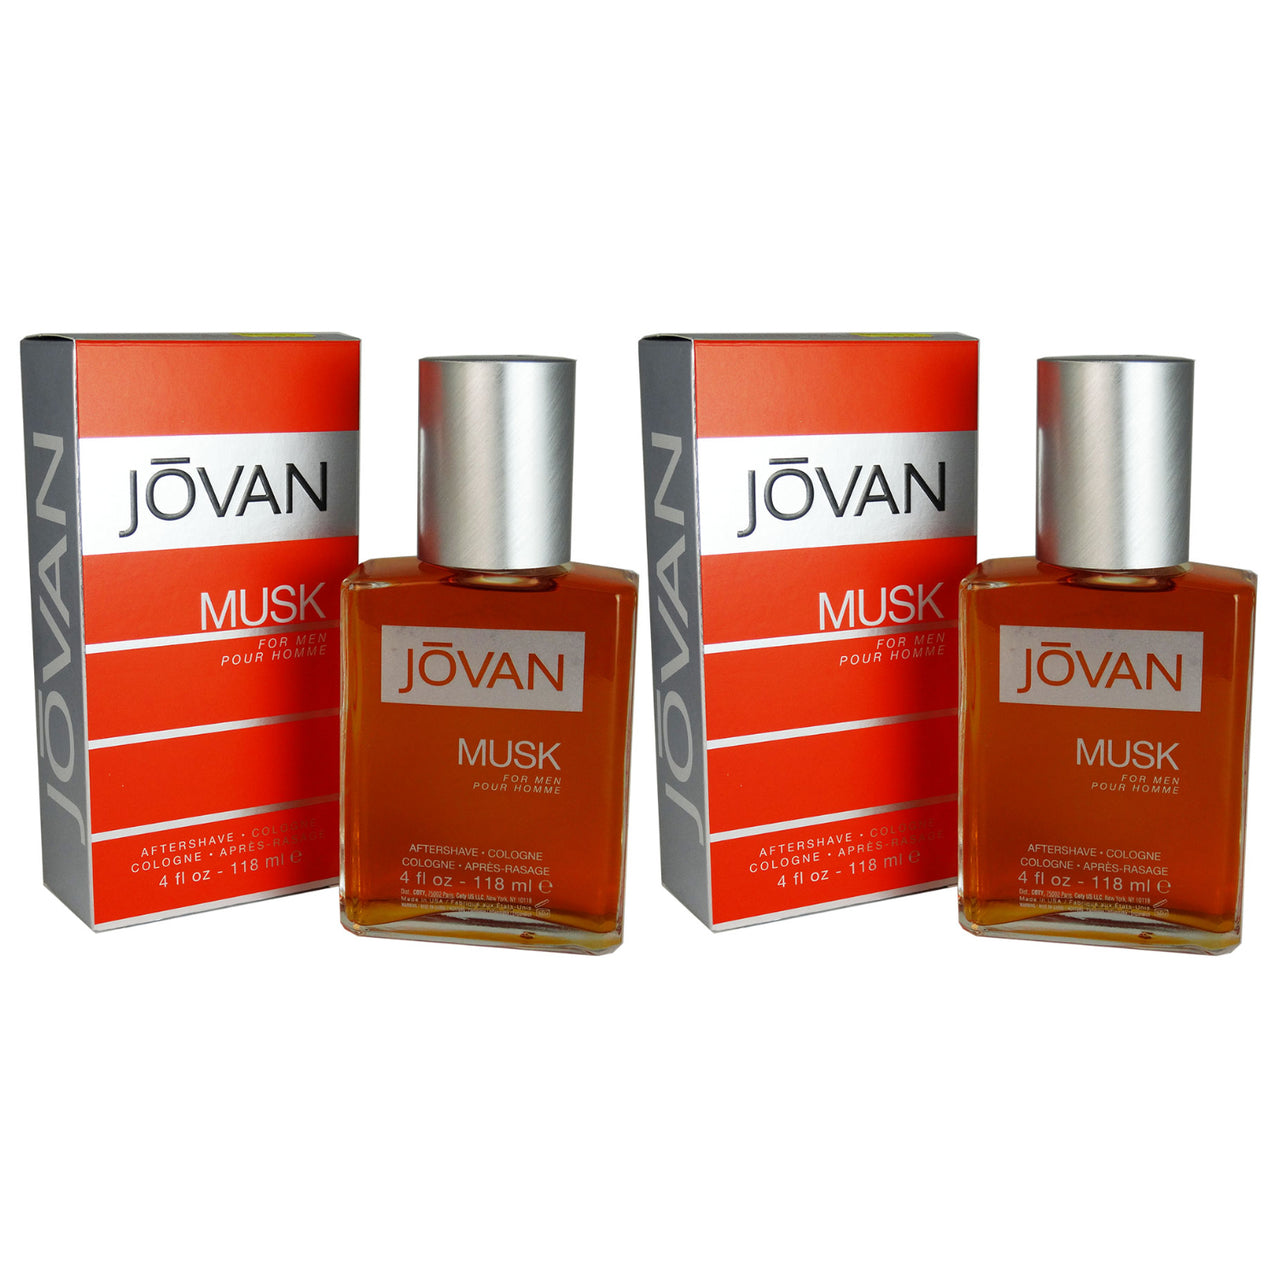 Jovan Musk 4 oz Aftershave Cologne 2 Pack